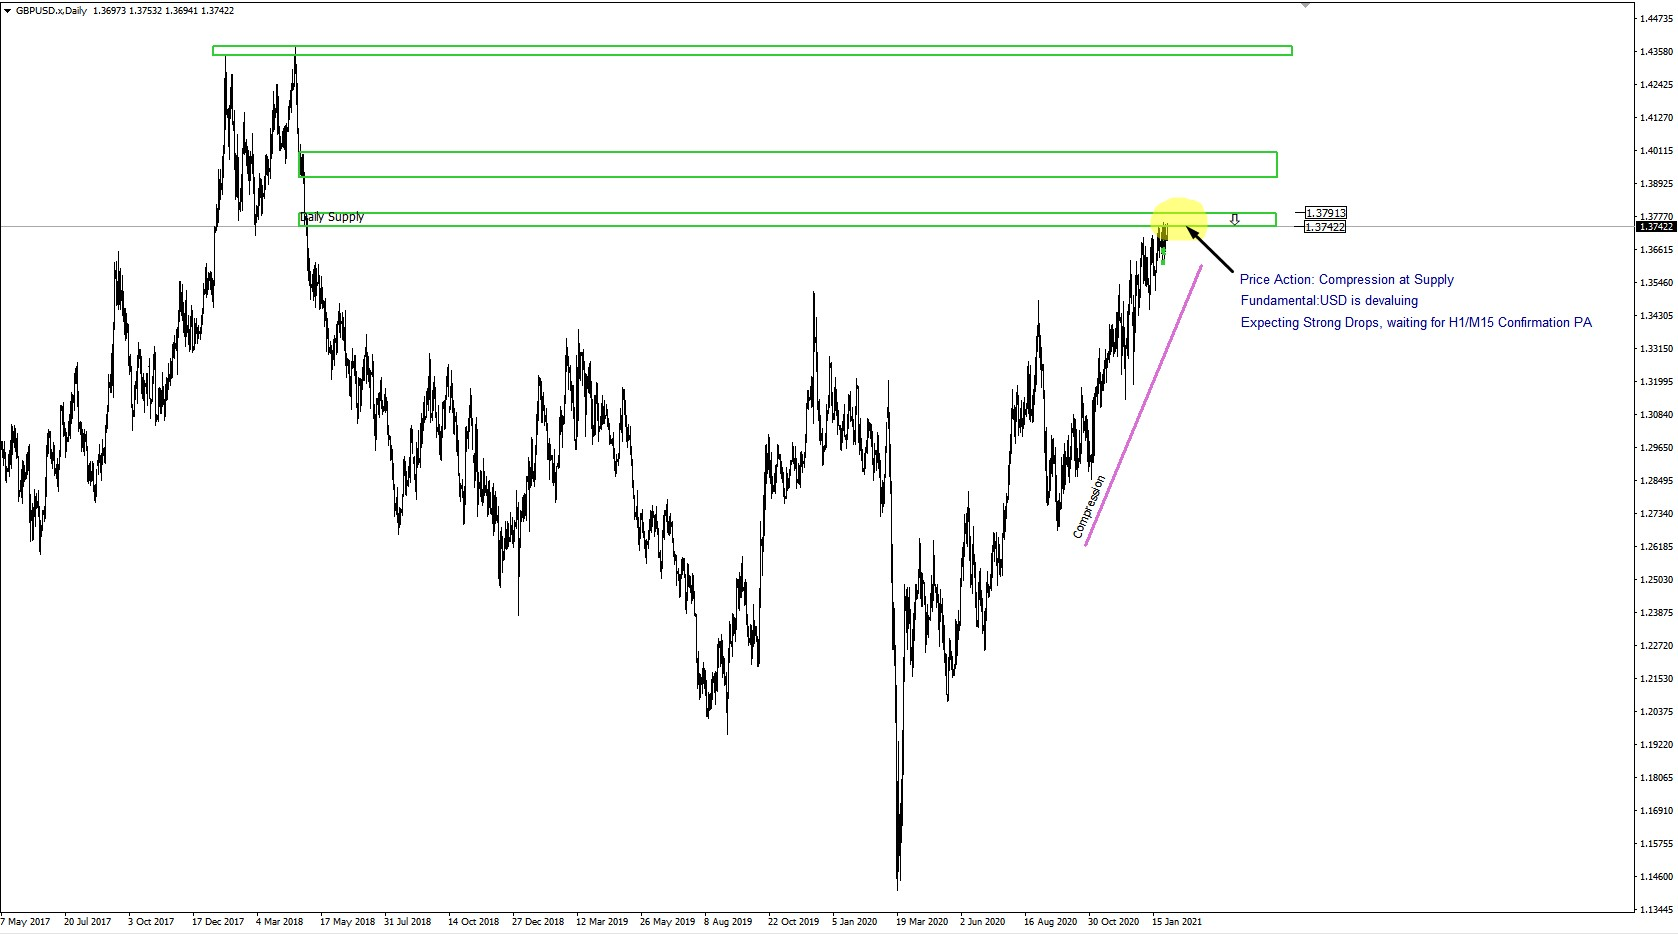 GBP/USD D1 Supply And Demand, Price Action, Fundamental